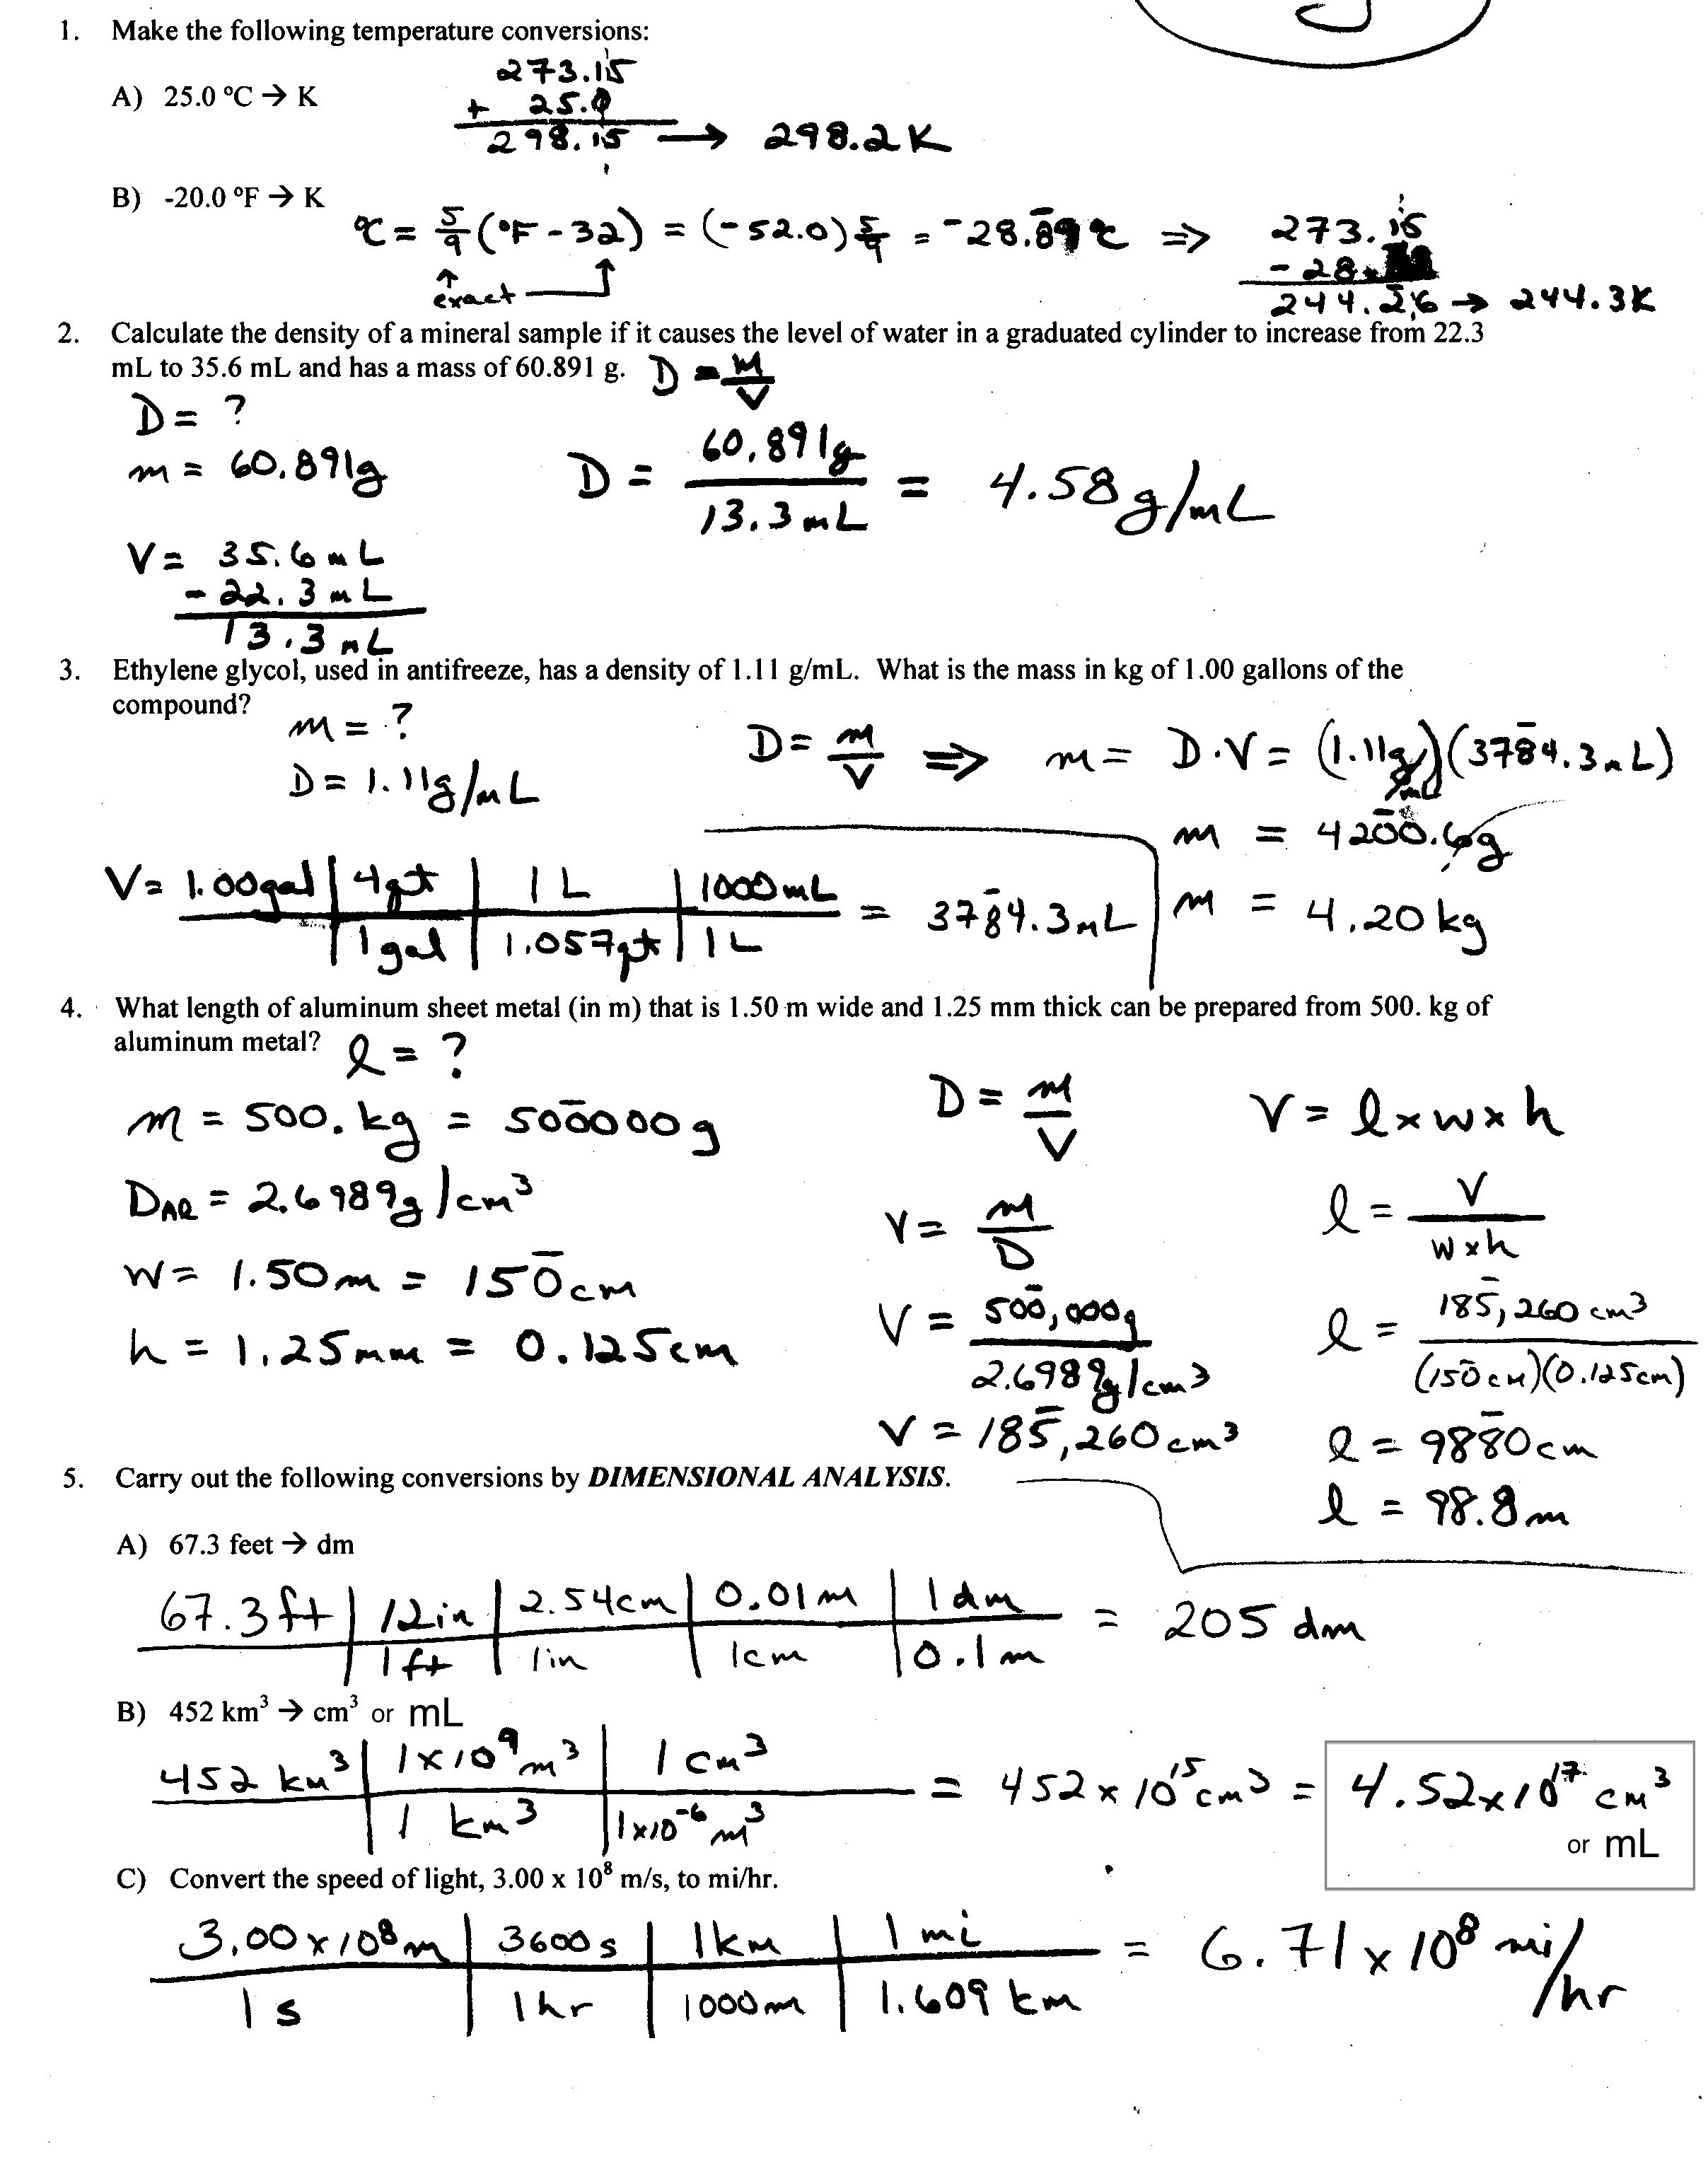 worksheet Moles Molecules And Grams Worksheet Answer Key stoichiometry grams to worksheet free worksheets library molar mass answers elleapp